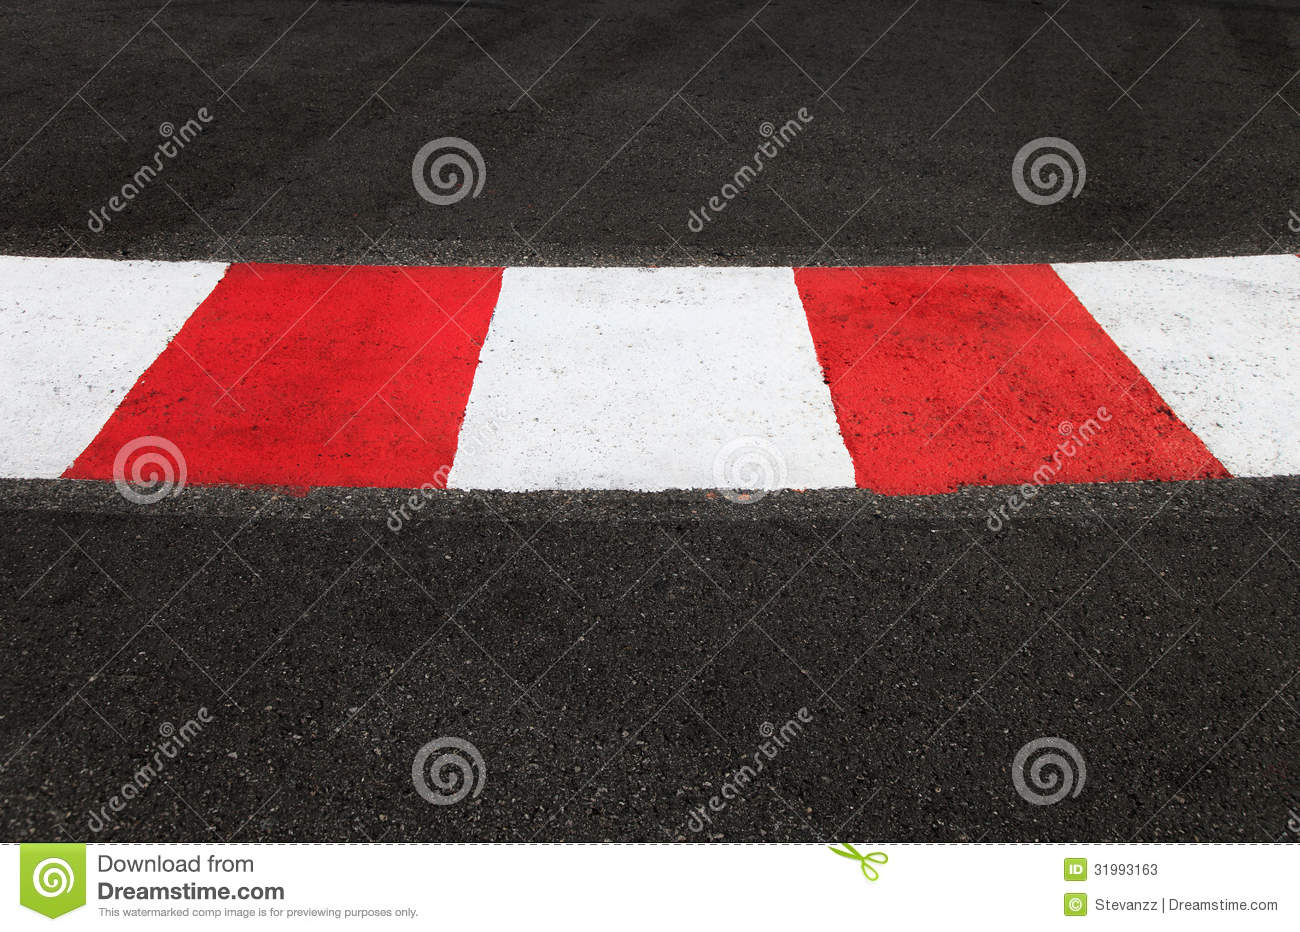 Texture Of Race Asphalt And Curb On Grand Prix Circuit Stock Image - Image of protection, race ...